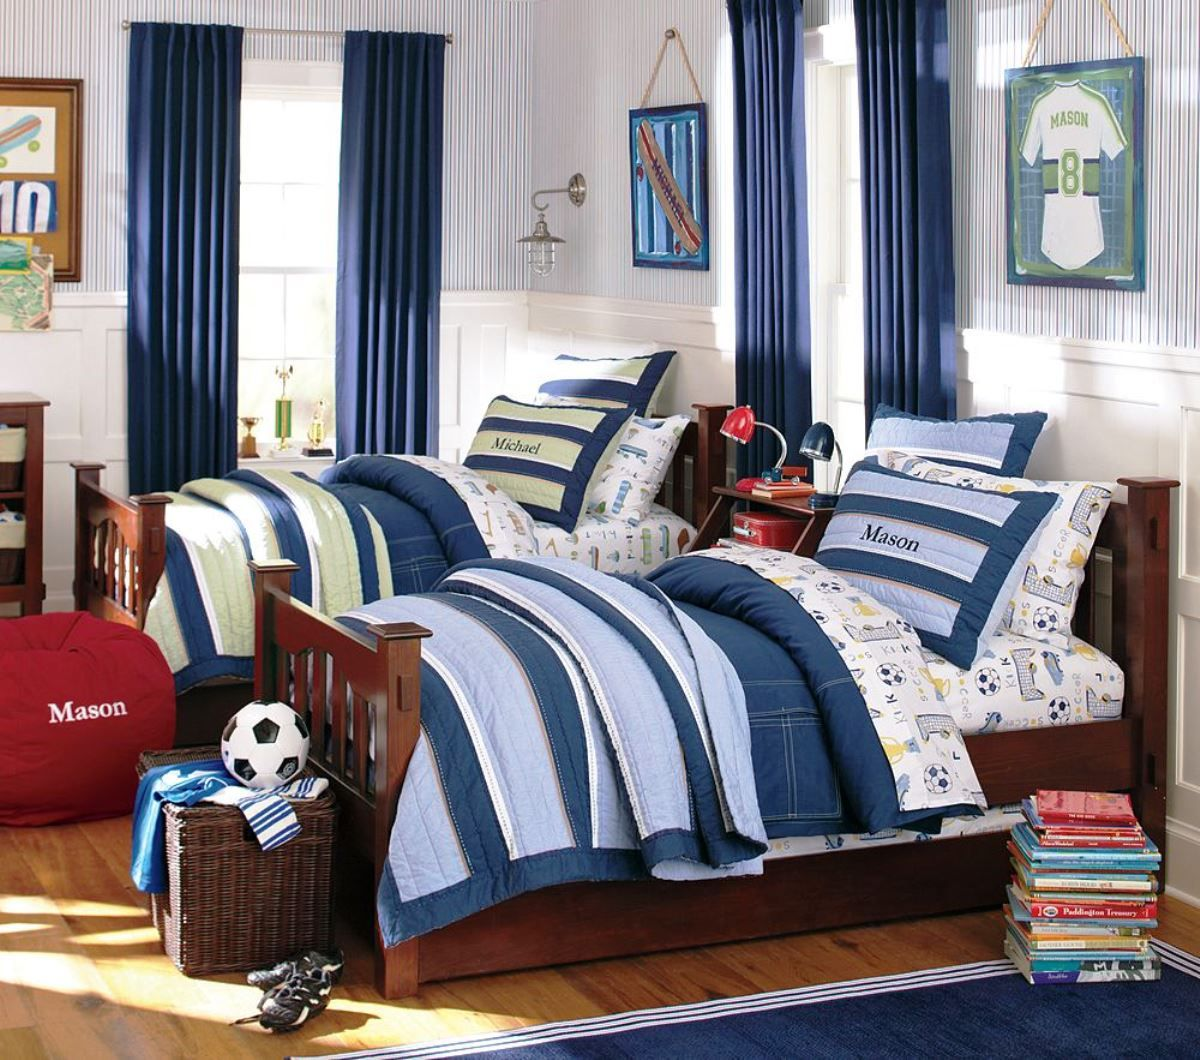 Double Bed Bedrooms | Double Boys Sports Bedroom Ideas